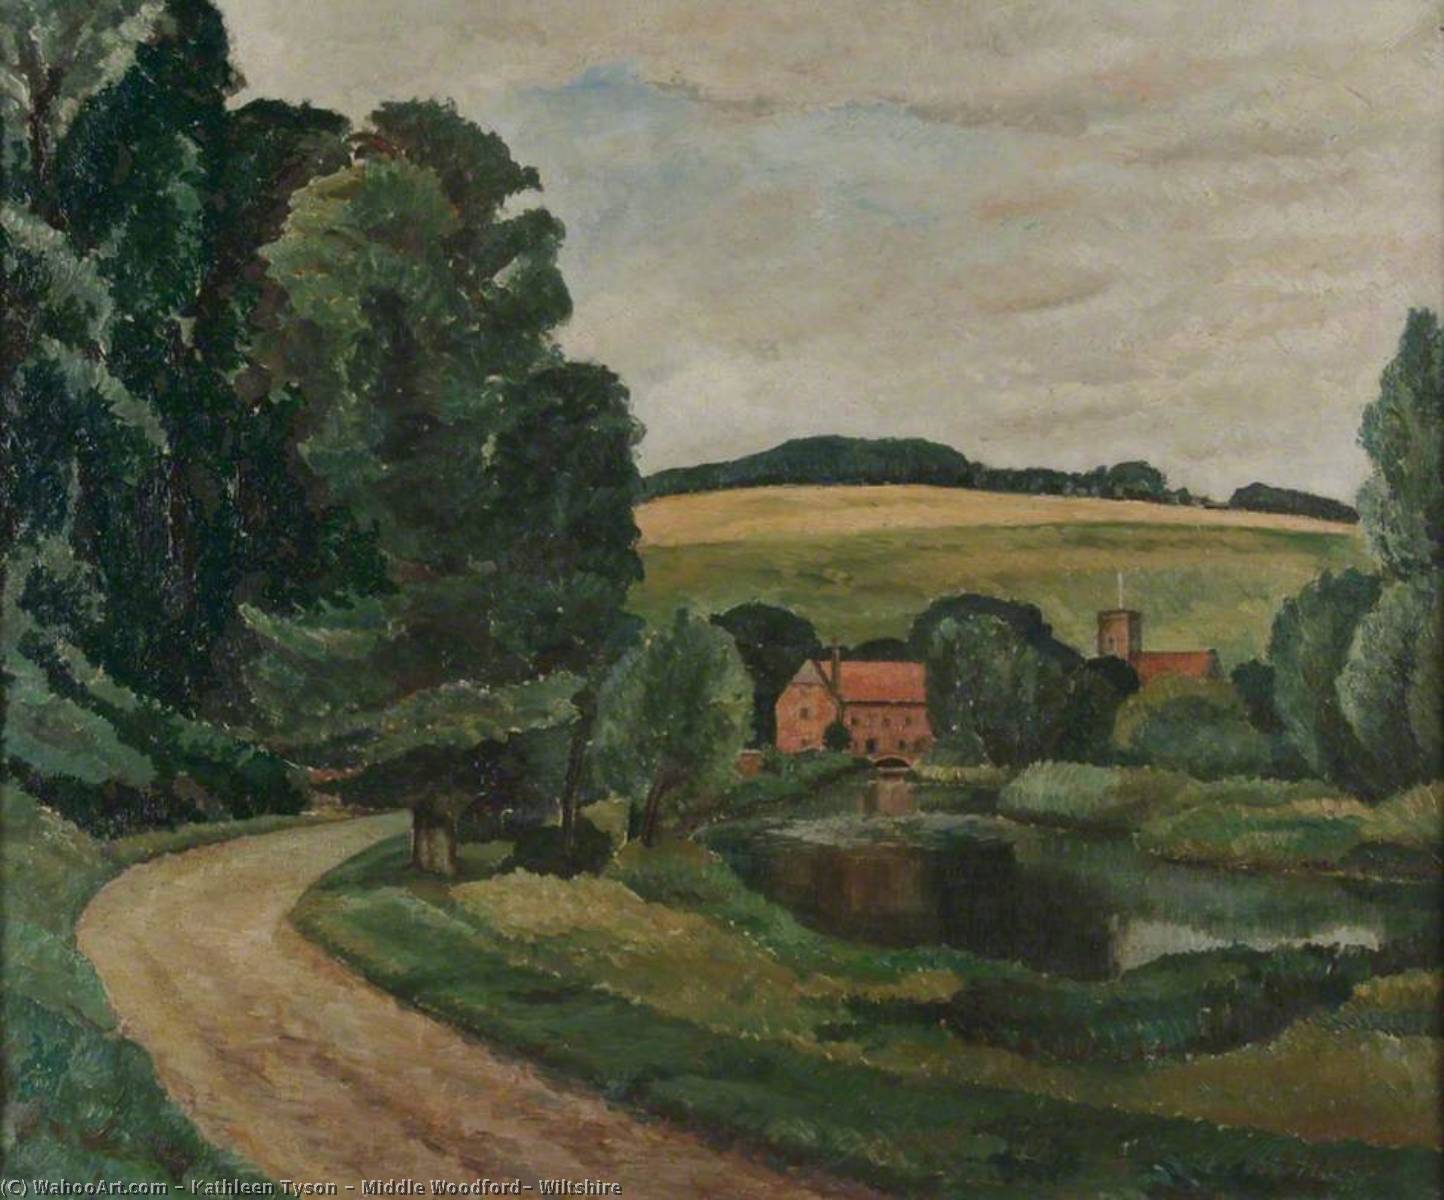 Middle Woodford, Wiltshire, Oil On Canvas by Kathleen Tyson